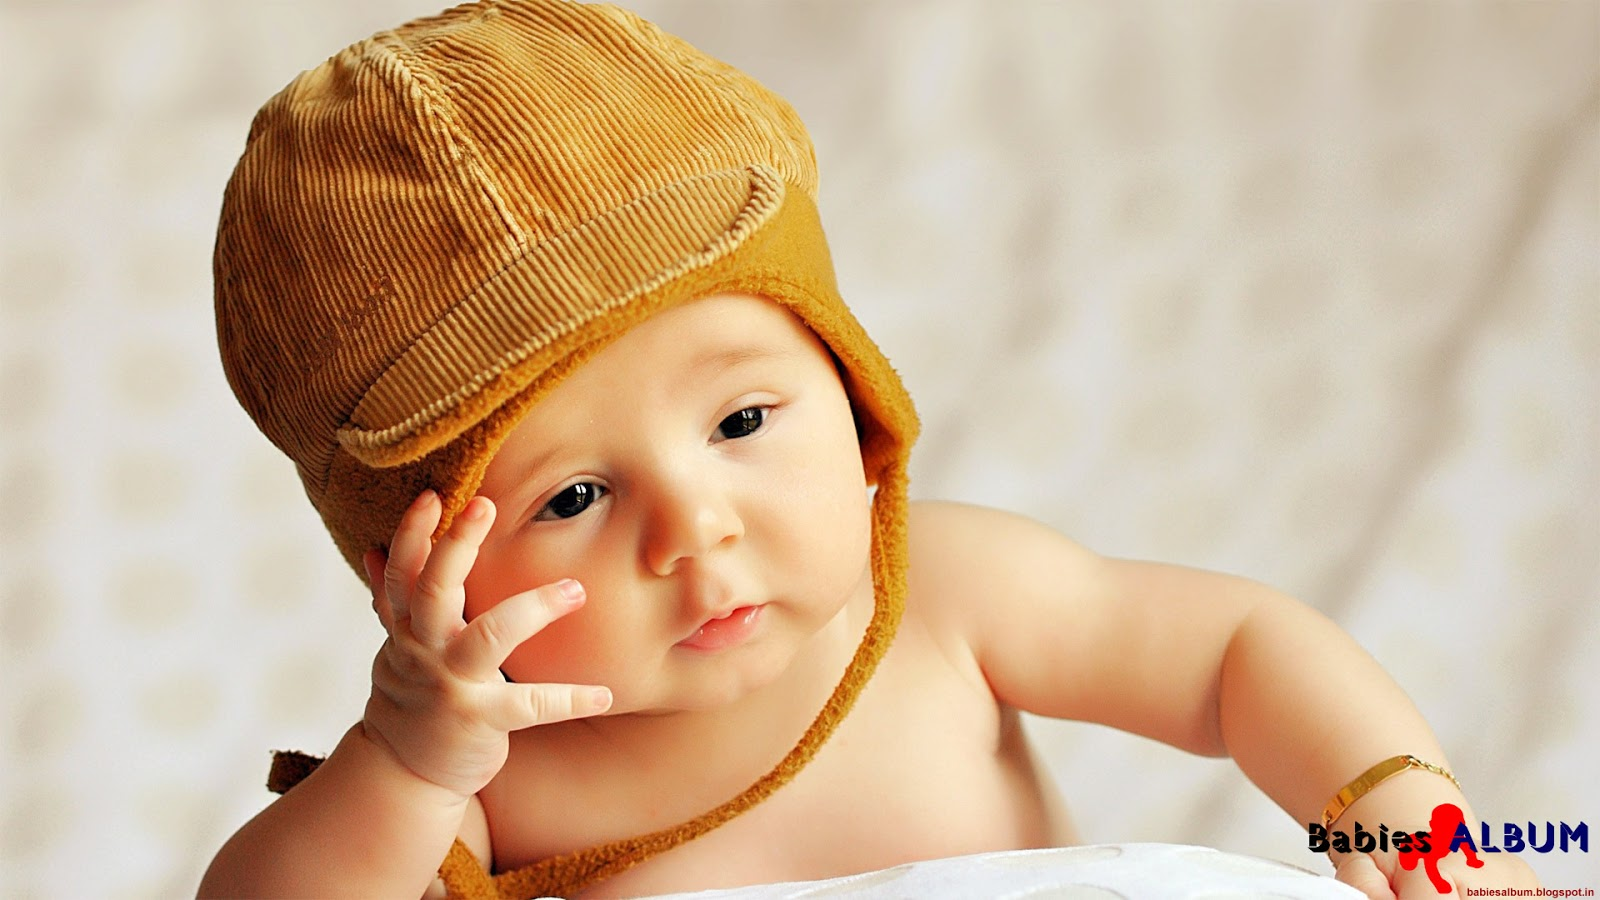 Cute Babies: 7 Cutest Babies